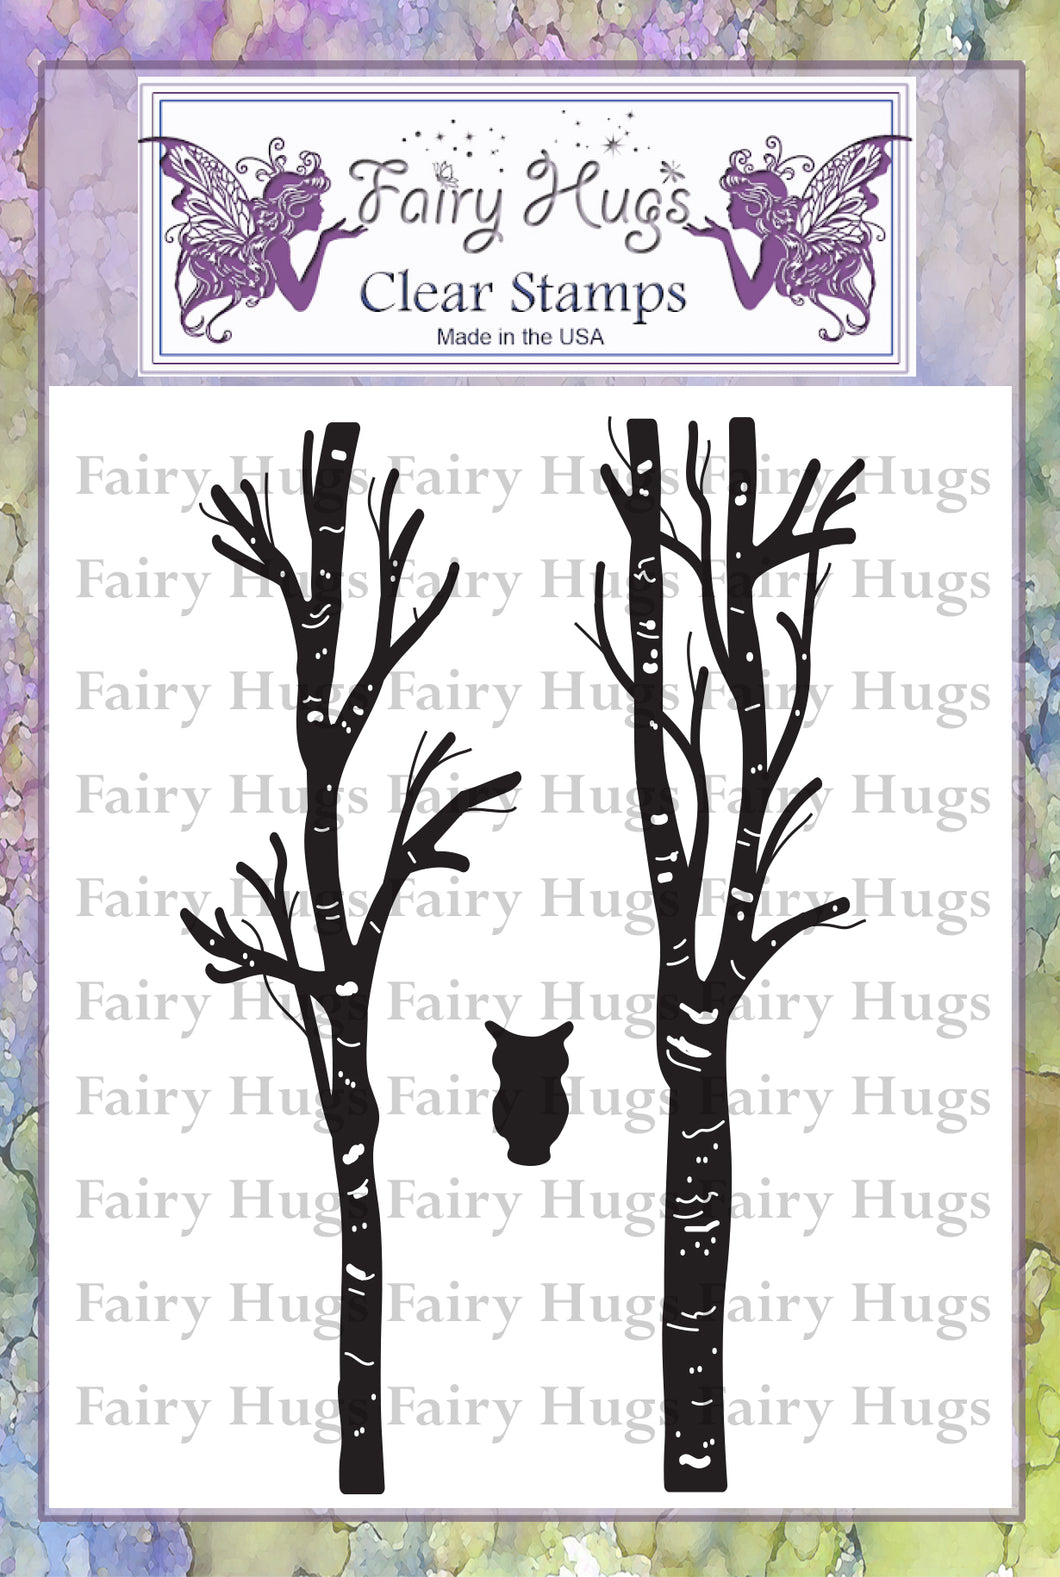 Fairy Hugs Stamps - Birch Tree Set